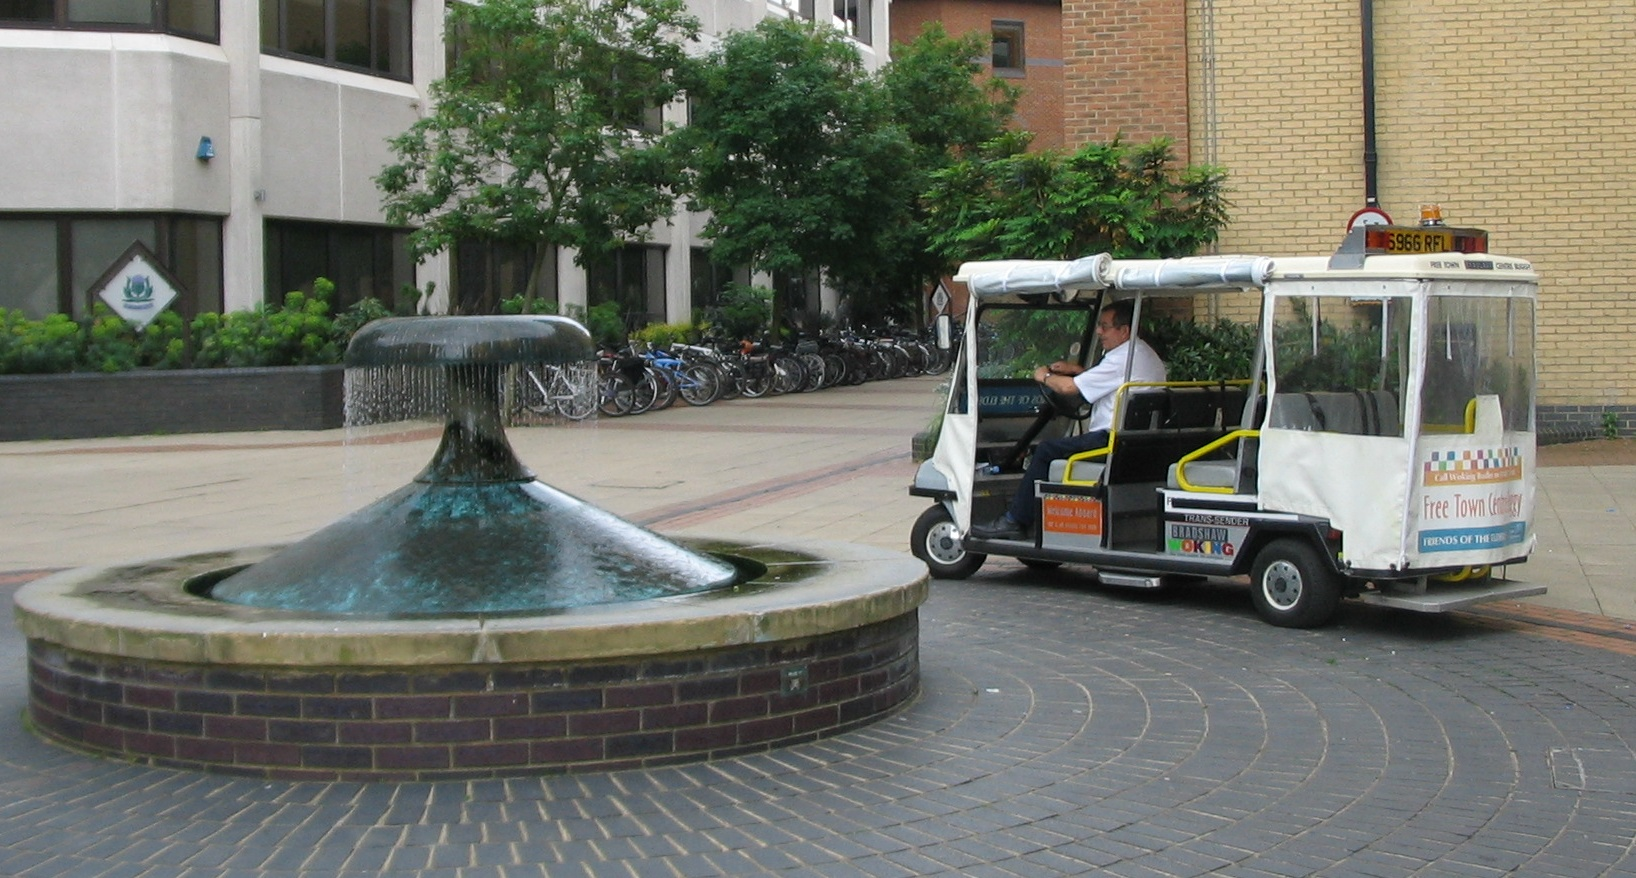 Town centre buggy at the TCB_fountain